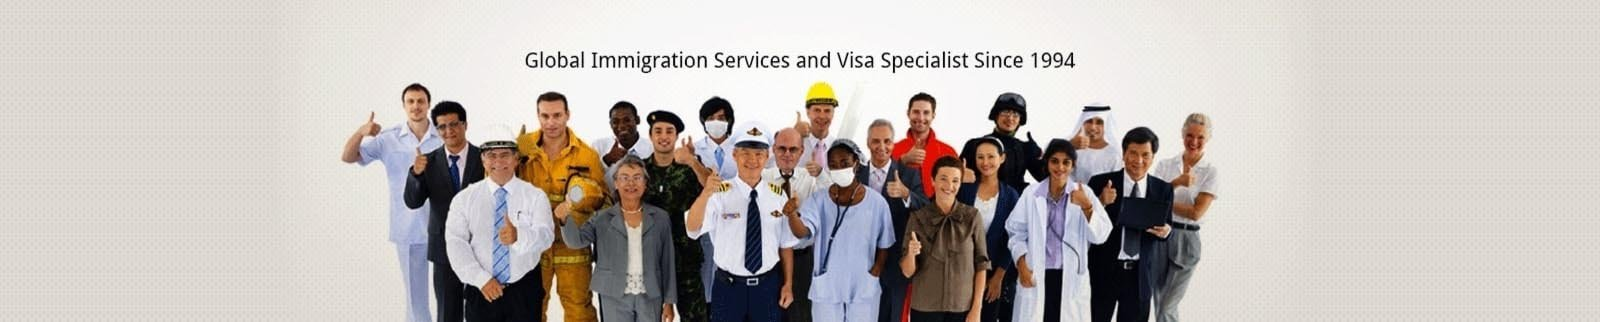 worldwide immigration services